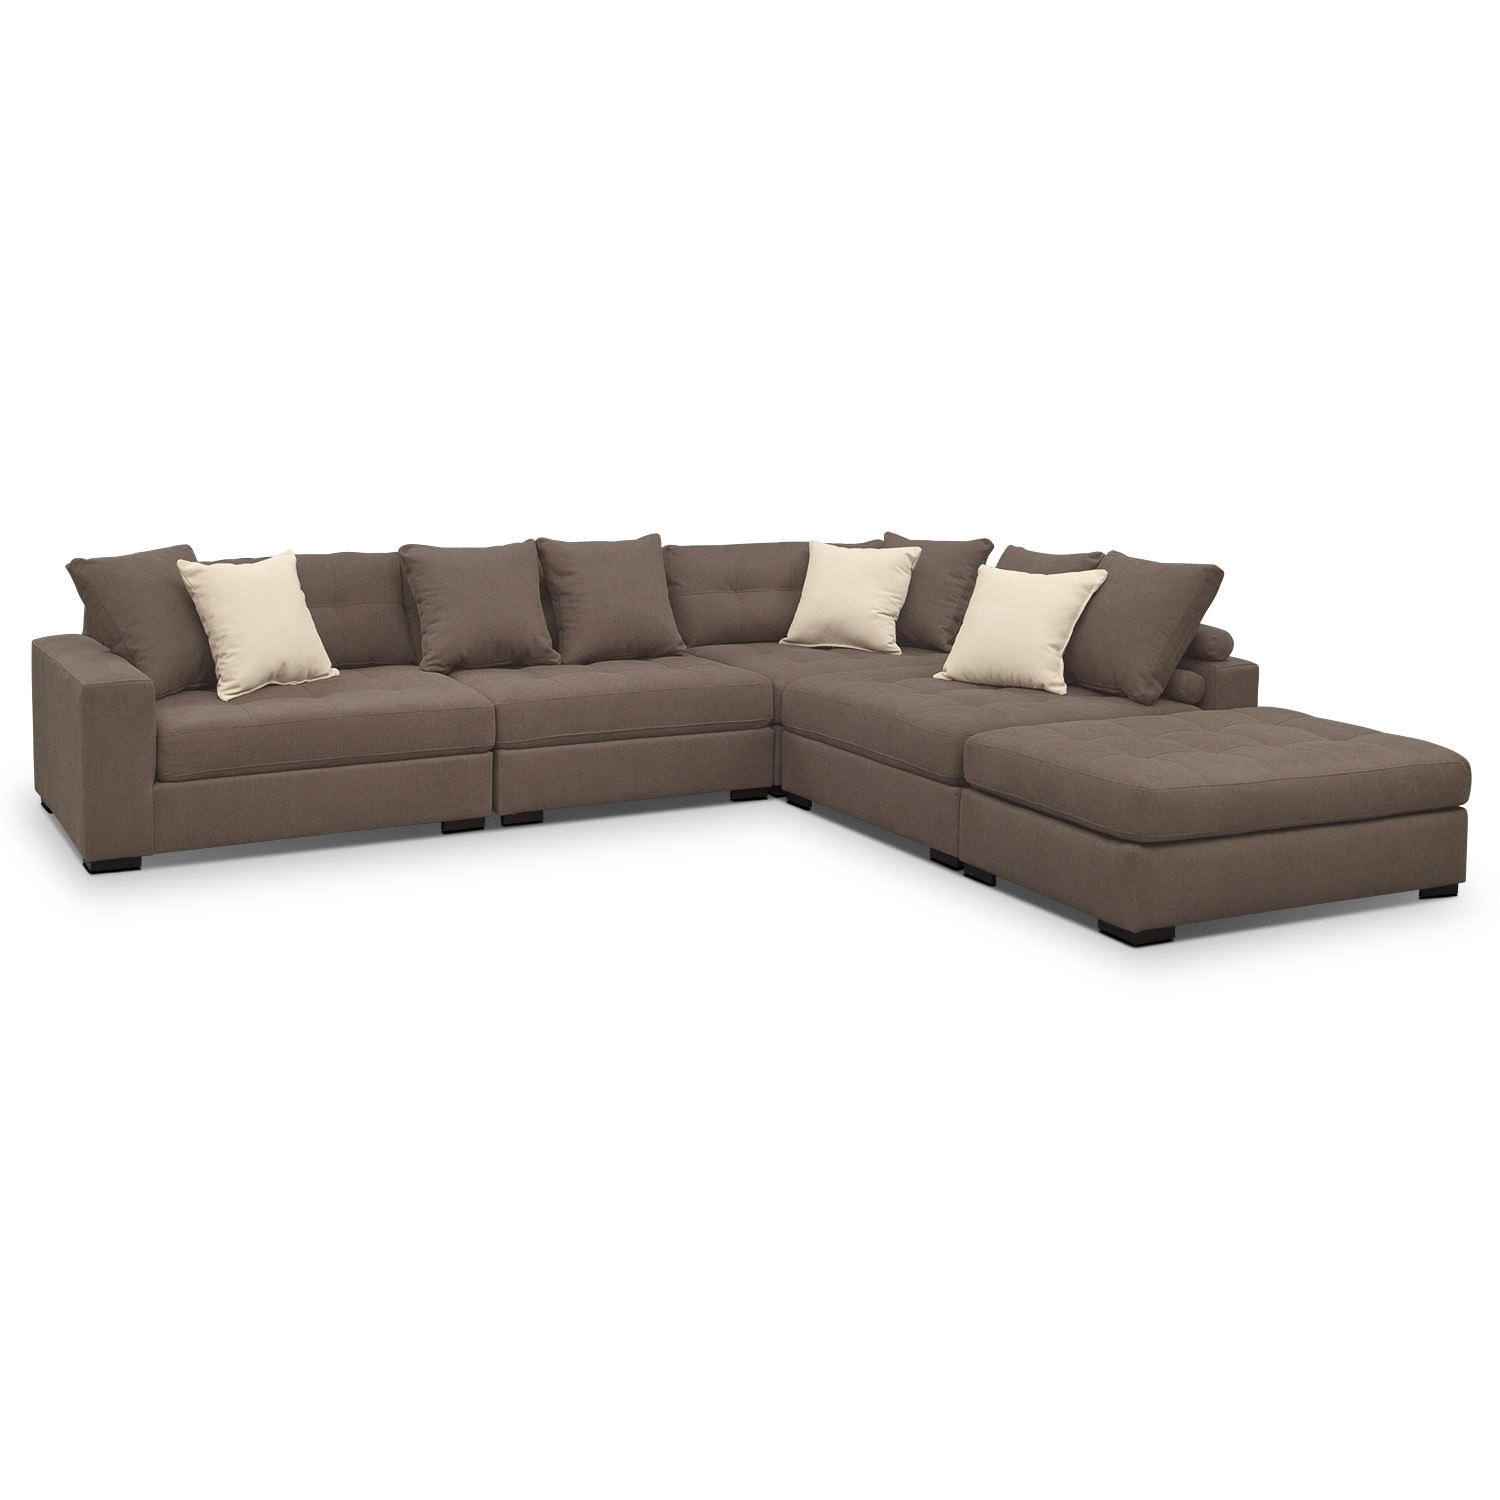 Venti 5 Piece Sectional And Cocktail Ottoman Set Value City